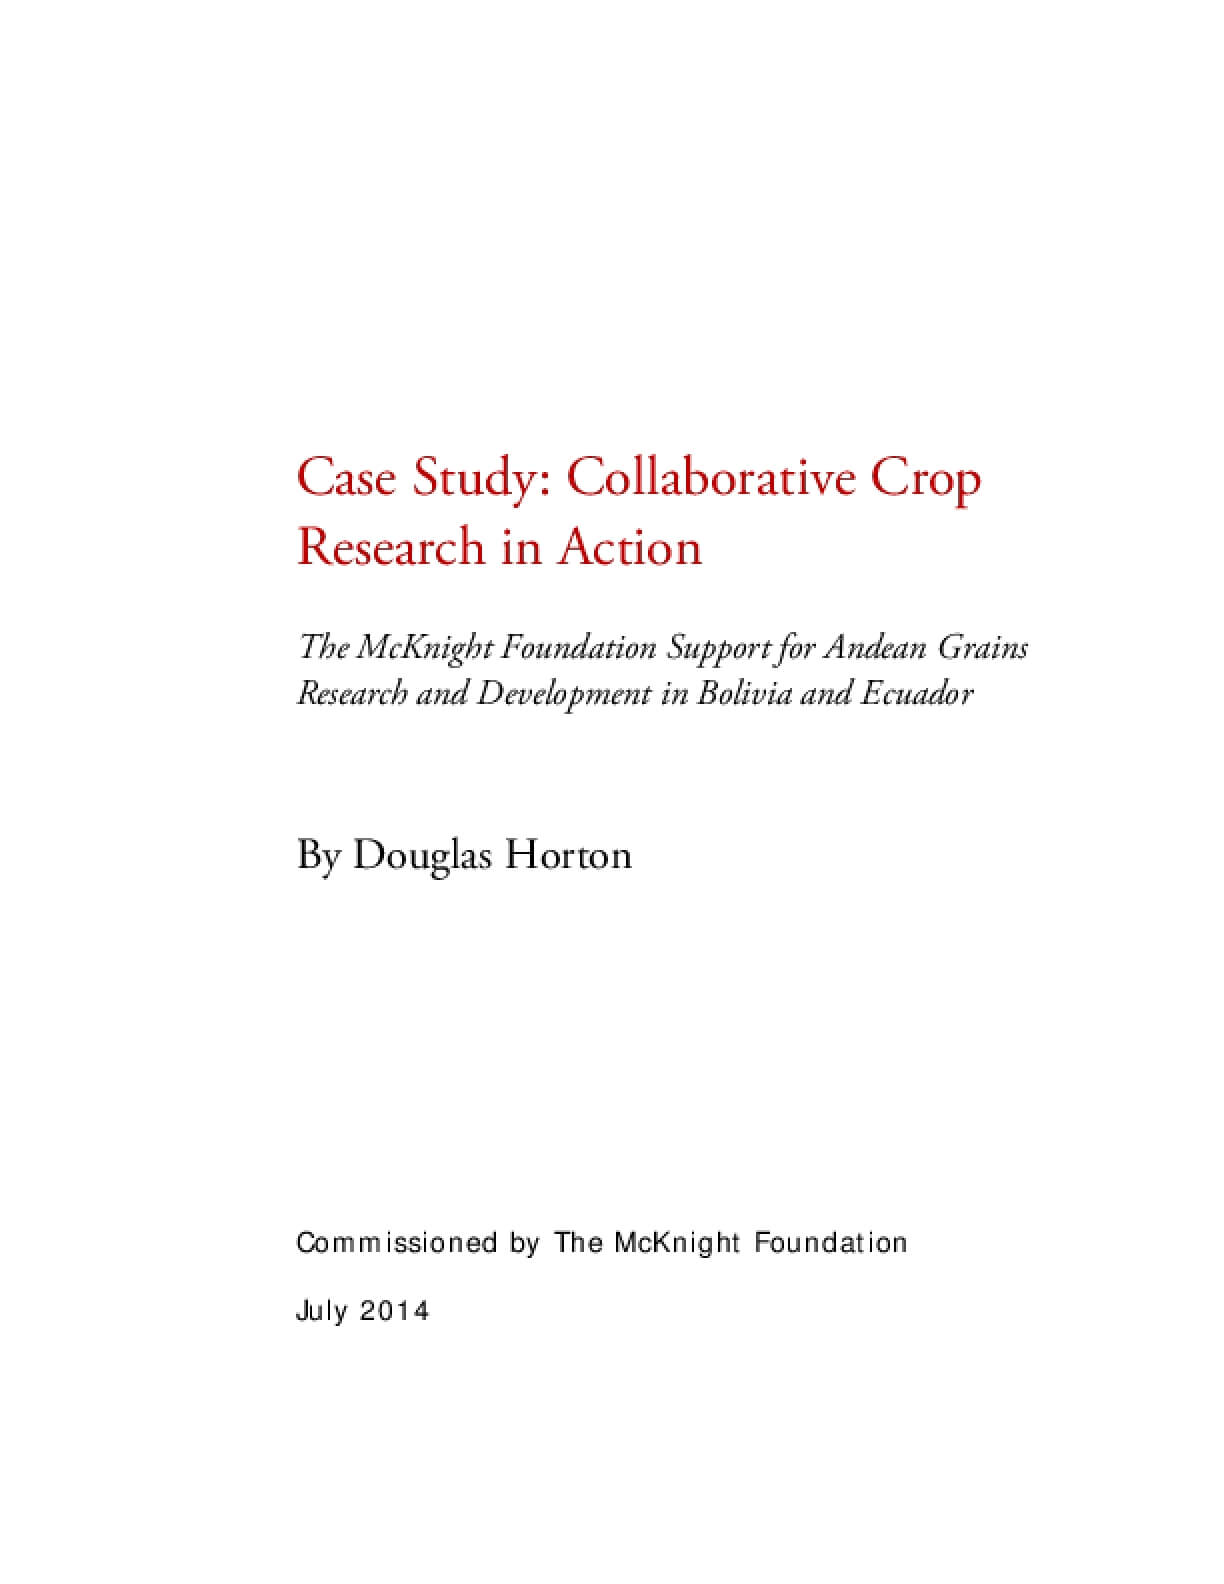 Case Study: Collaborative Crop Research in Action